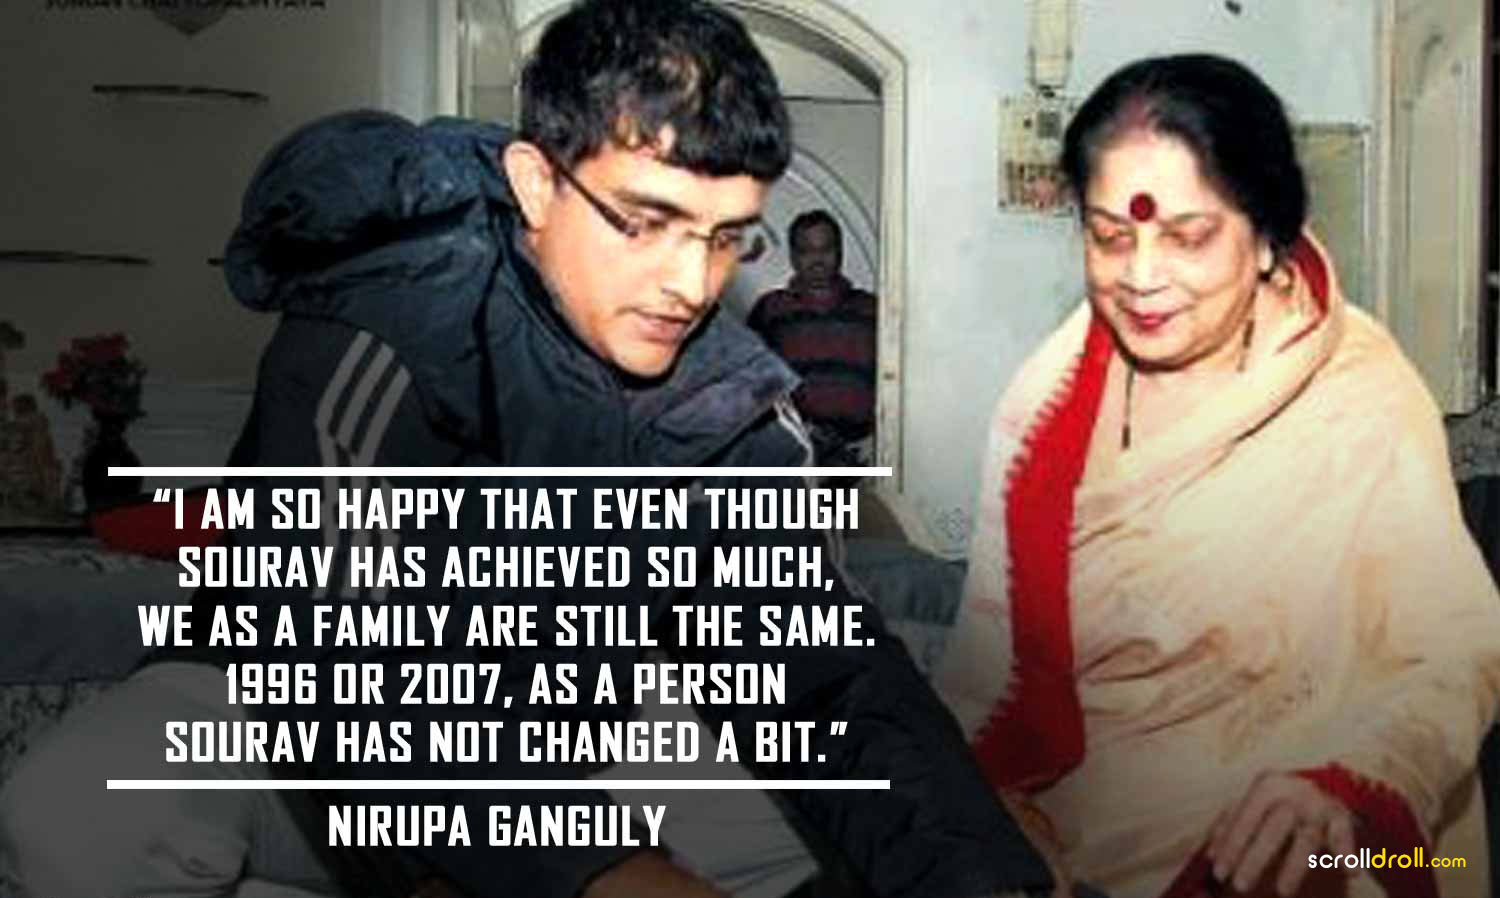 Quotes on Sourav Ganguly (6)